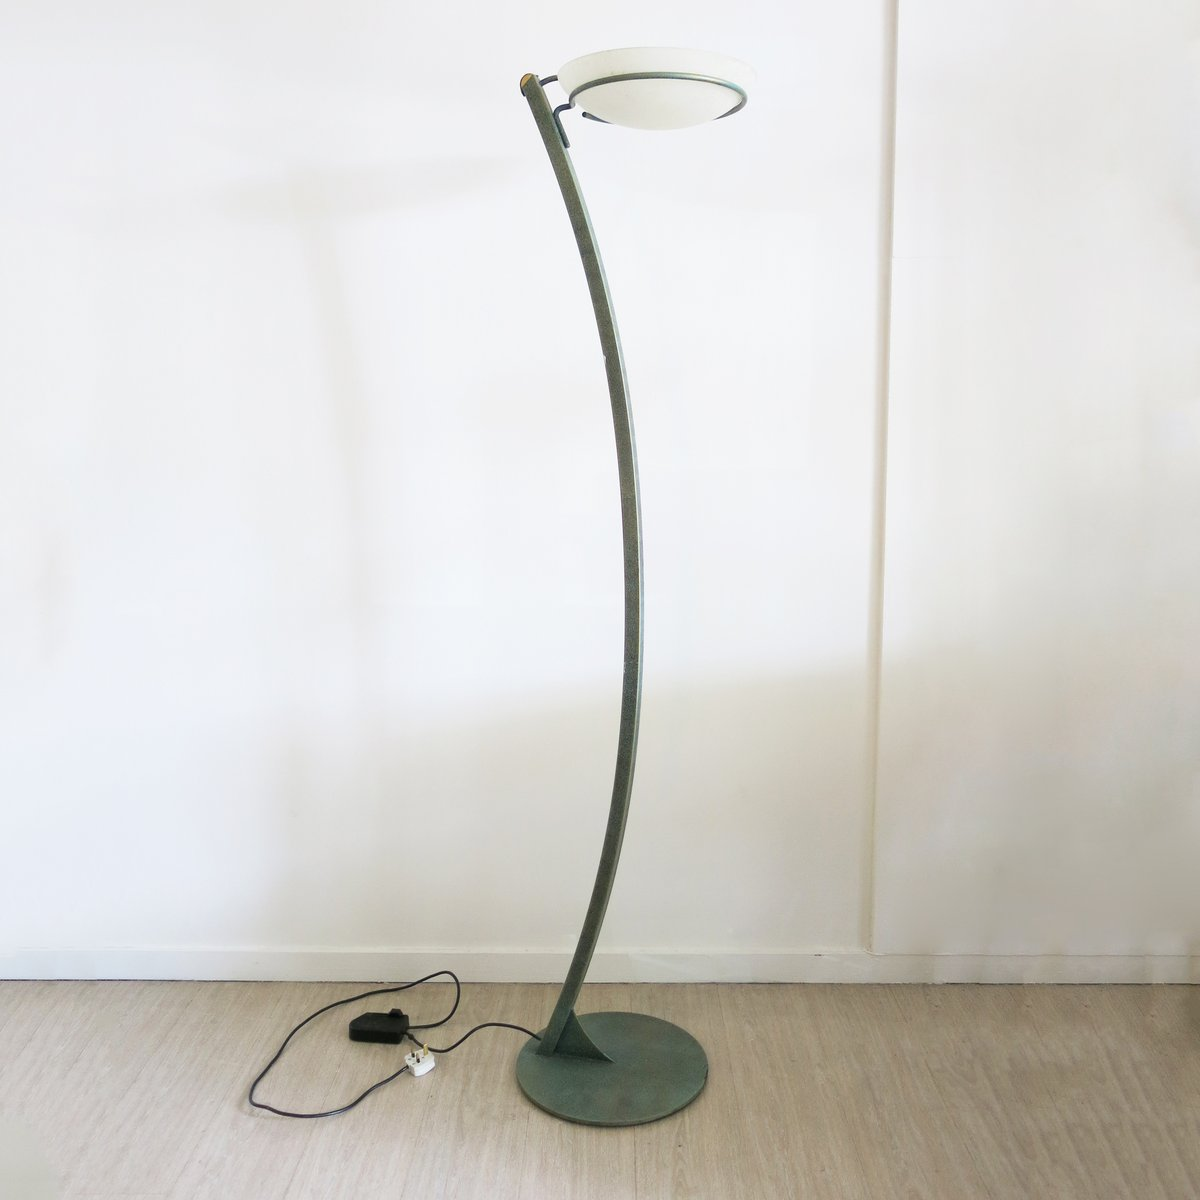 French floor lamp by pierre vandel 1970s for sale at pamono for 1970s floor lamps